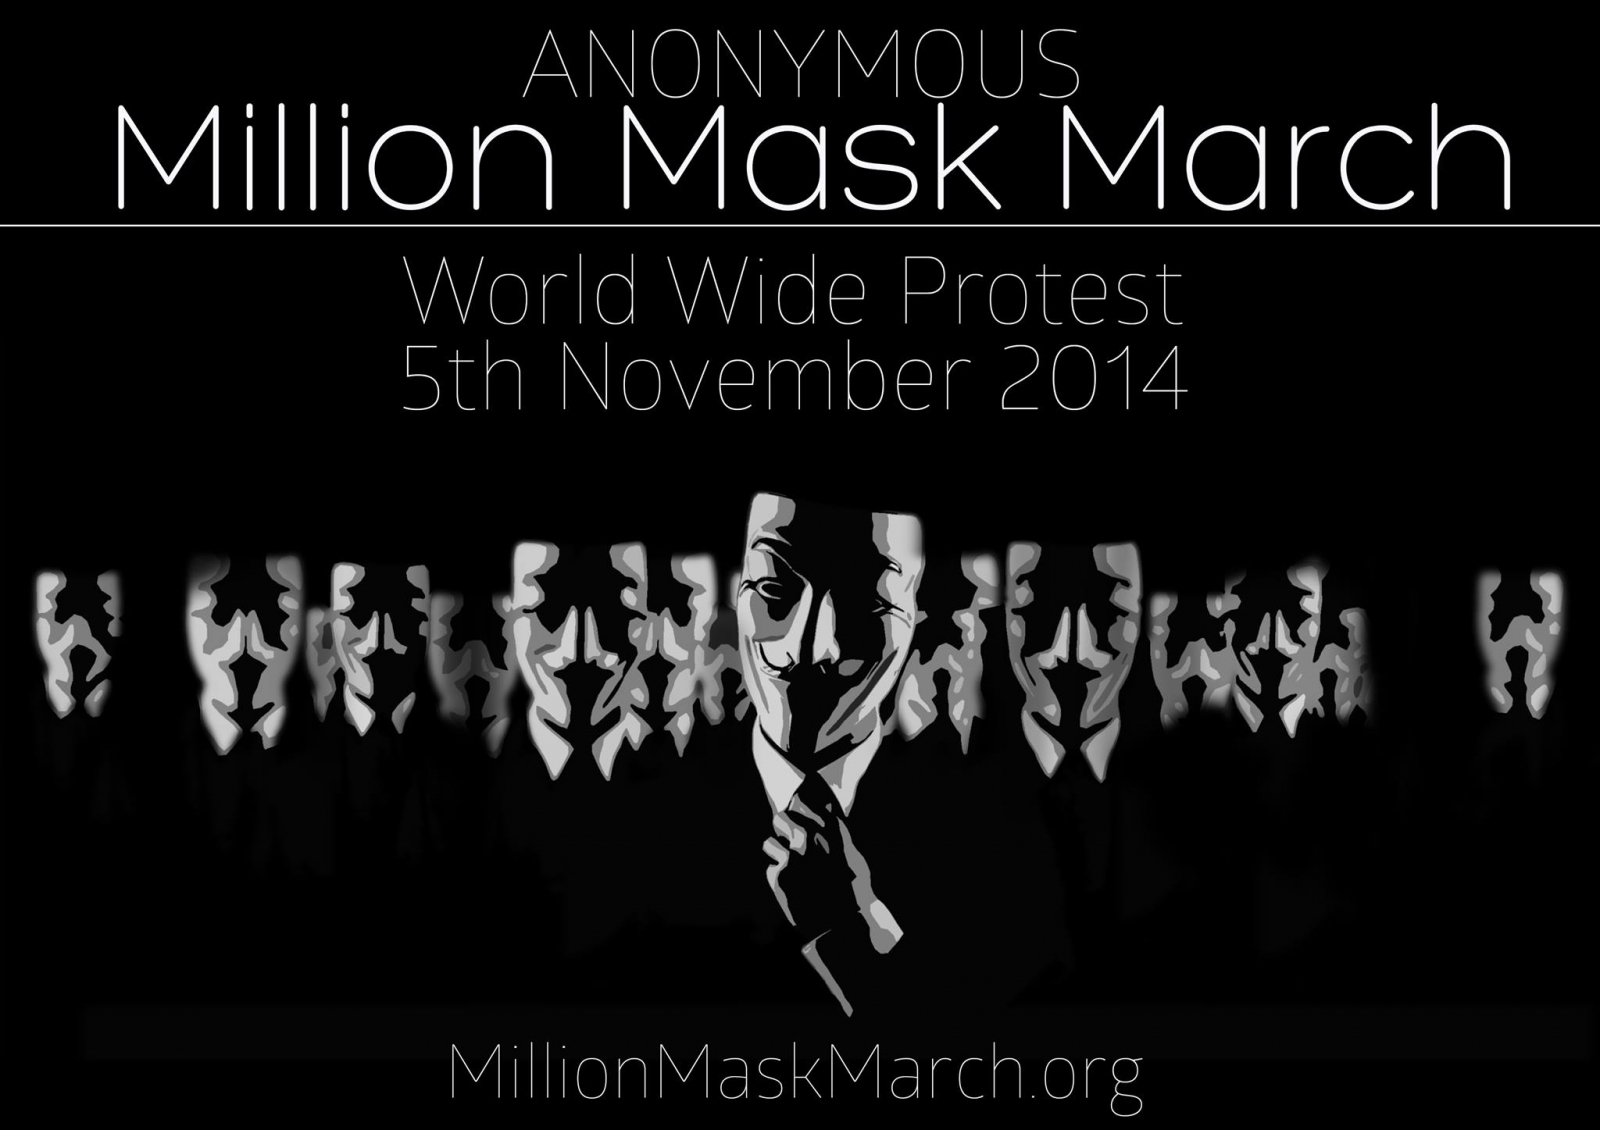 Anonymous Million Mask March 5 November 2014